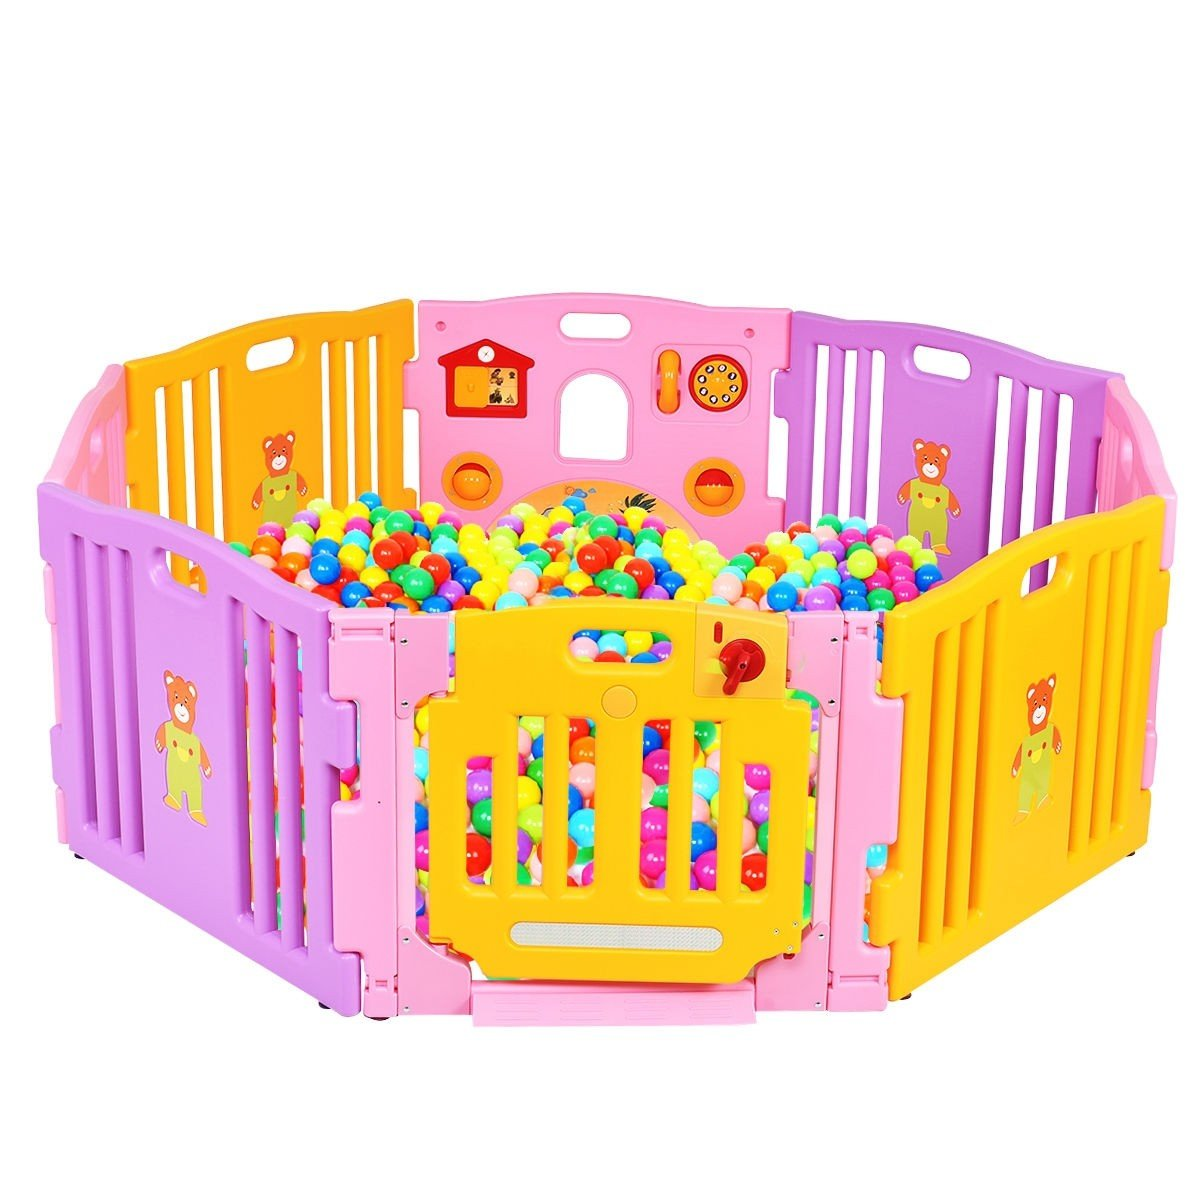 Pink 8 Panel Baby Playpen Kids Safety Play Center Center Yard Pink Indoor CHOOSEandBUY